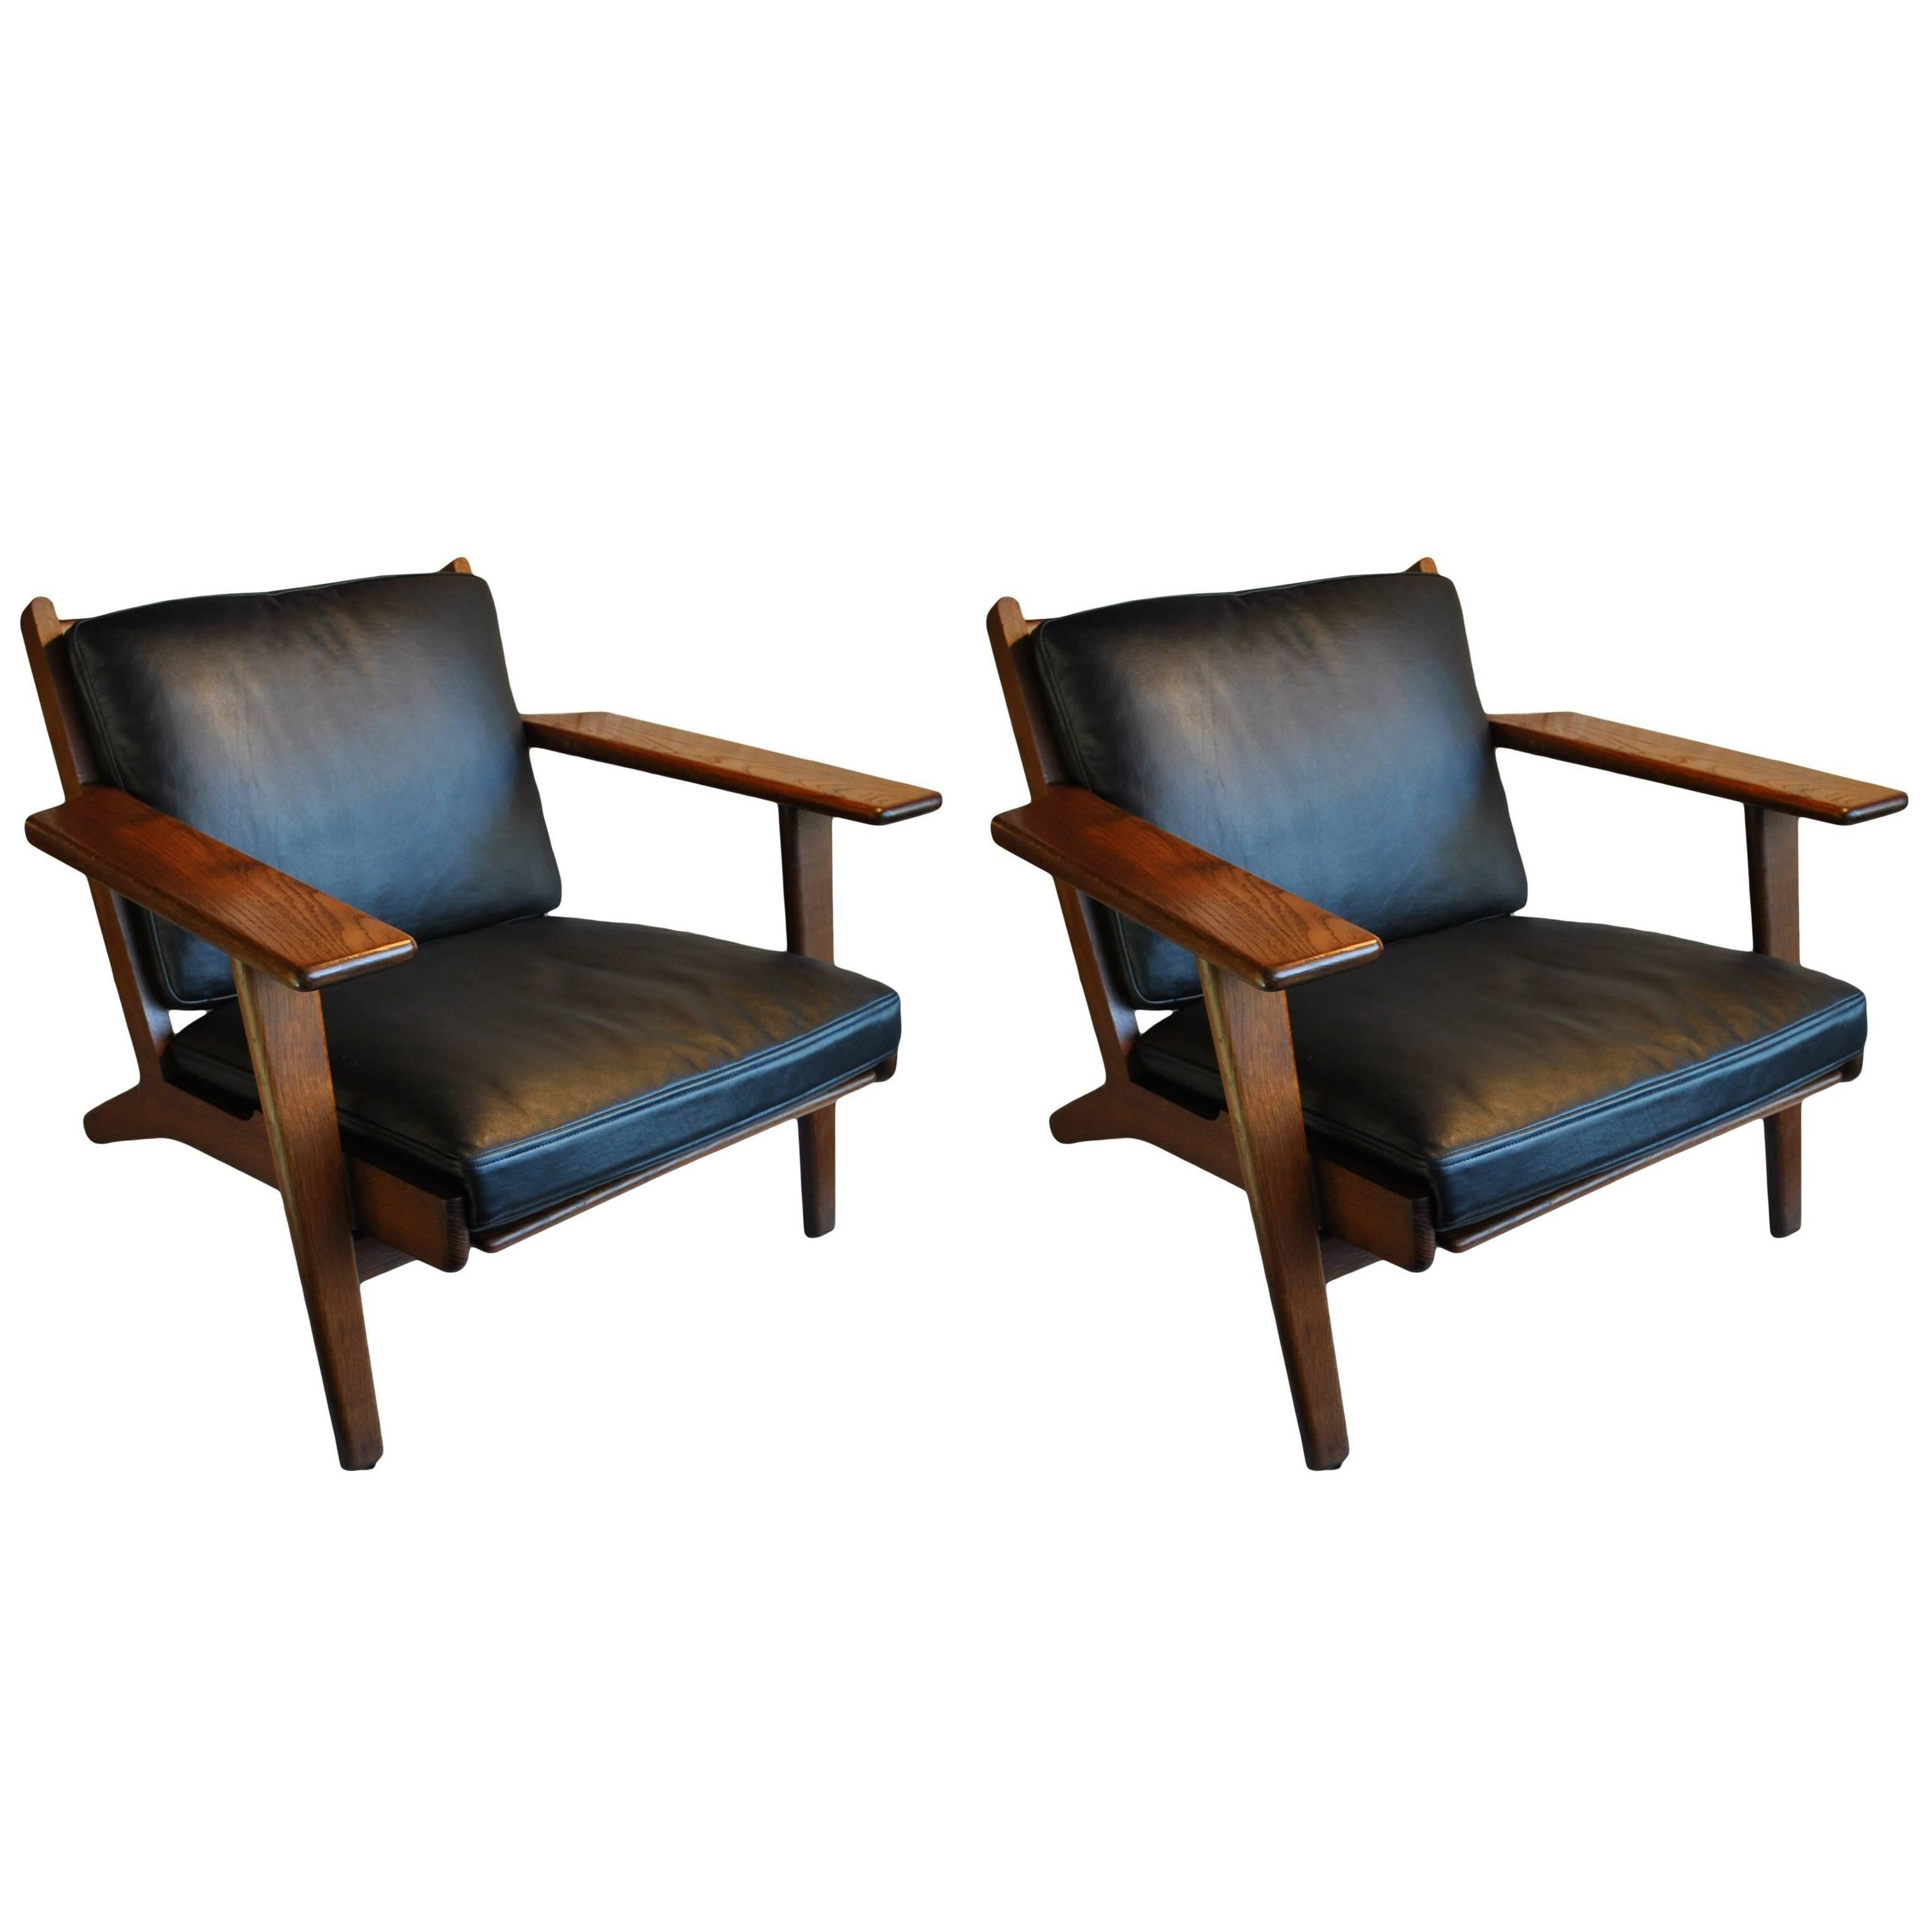 Refurbished Chairs Pair Of Hans J Wegner Ge290 Lounge Chairs Fumed Oak Fully Refurbished